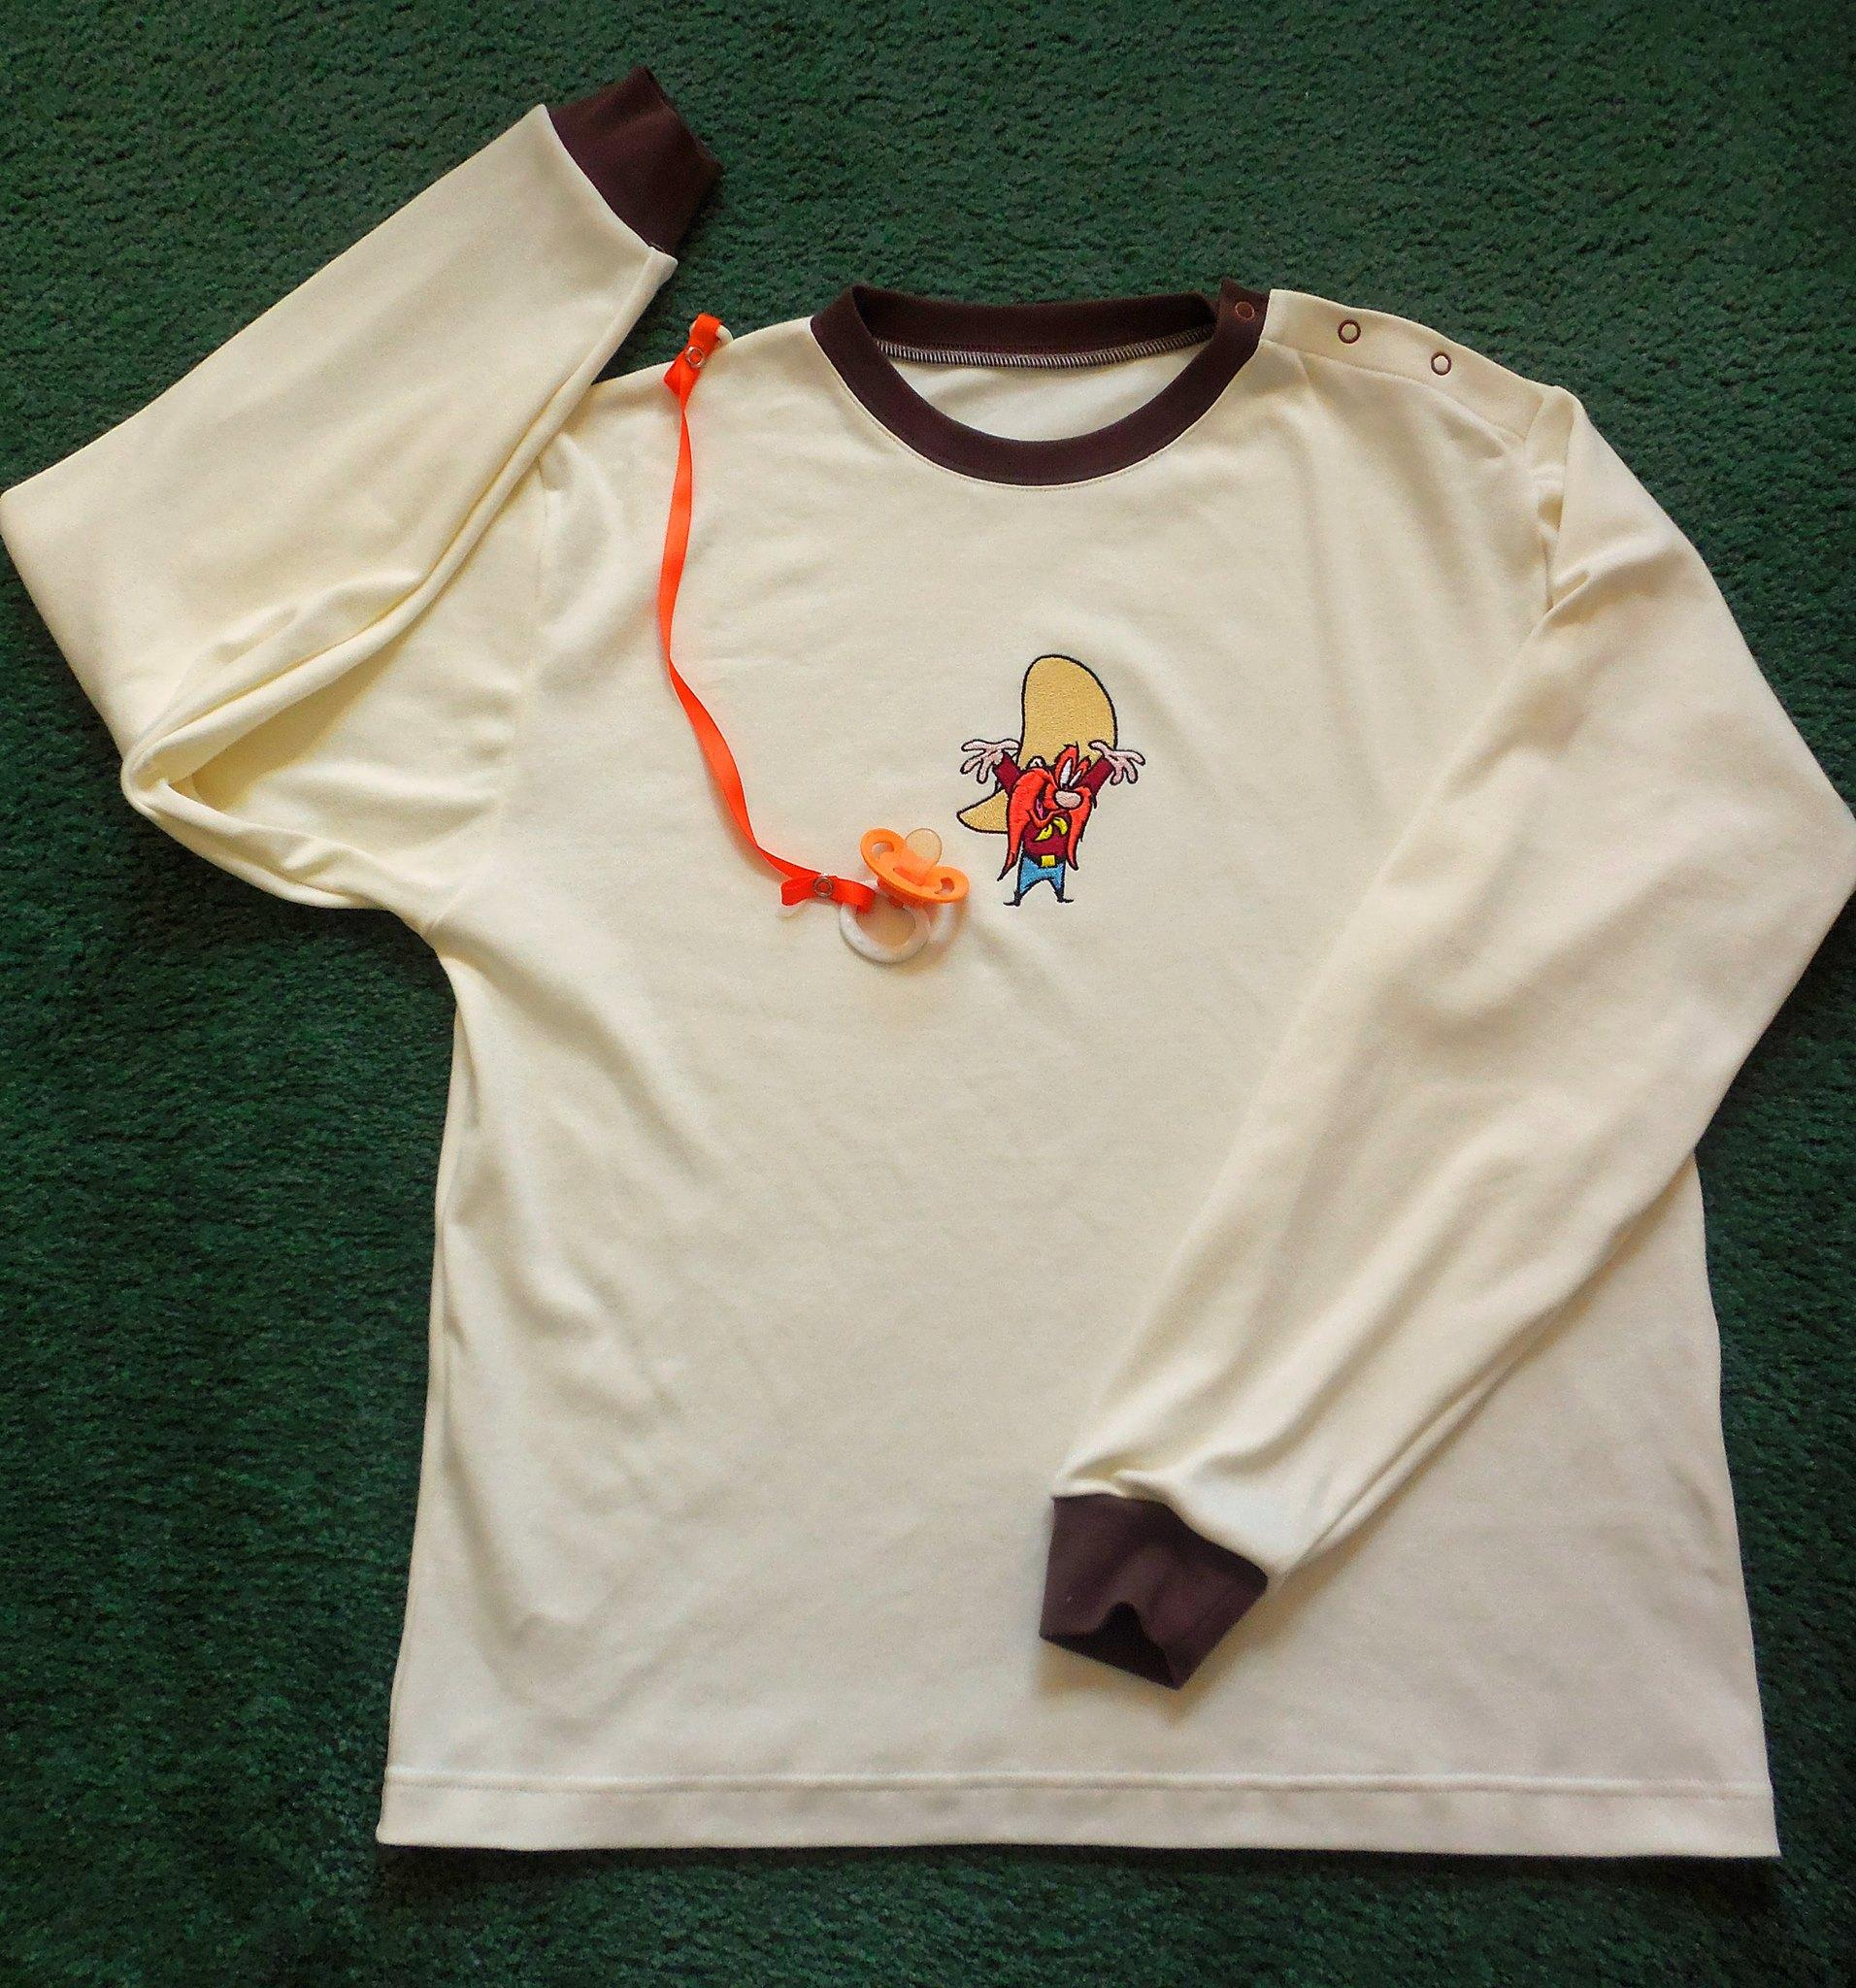 Baby outfit with Yosemite Sam embroidery design